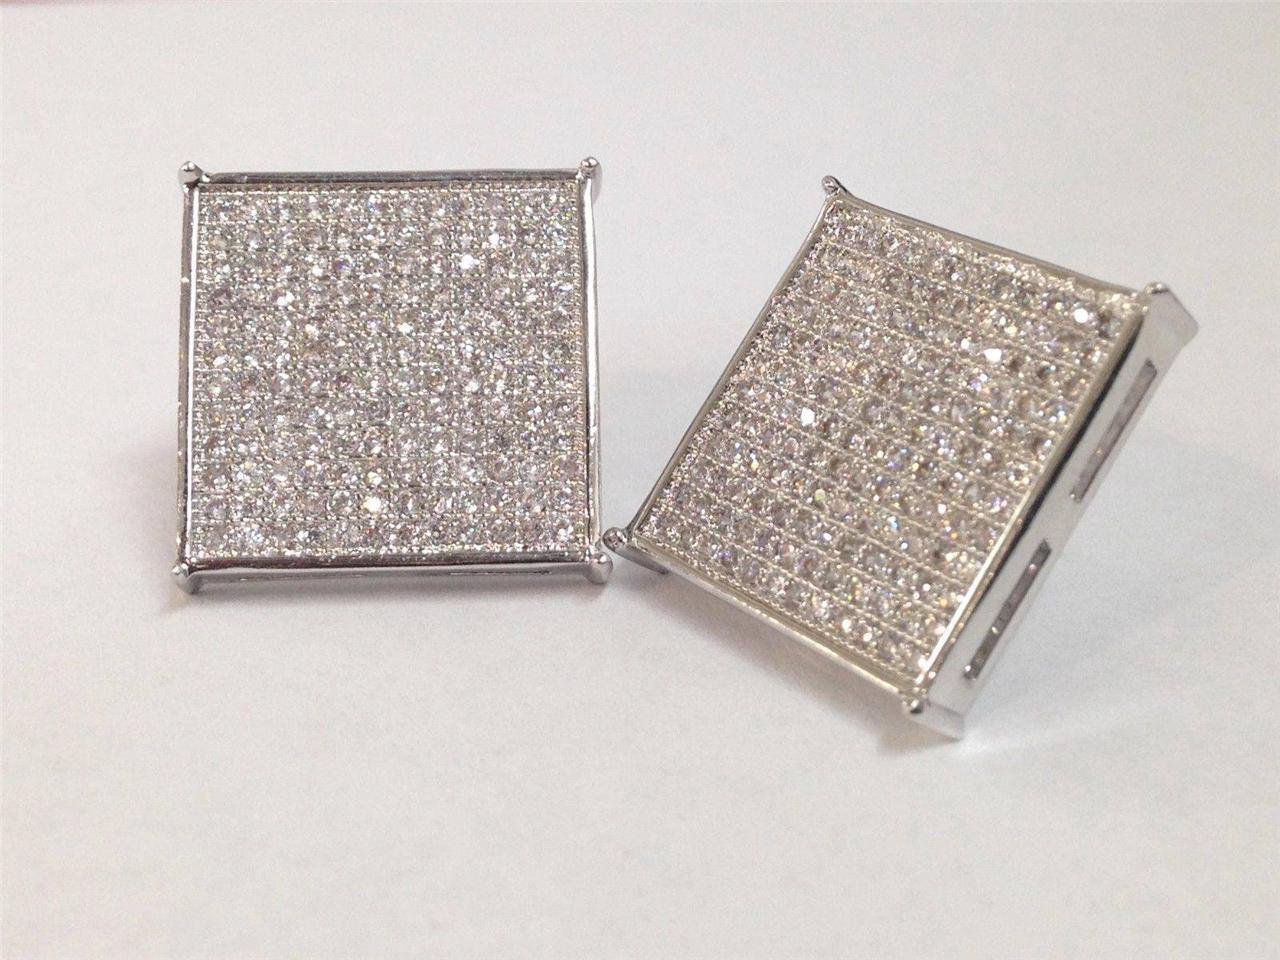 MEN 925 STERLING SILVER SQUARE 16MM LAB DIAMOND ICED OUT BLING STUD EARRING